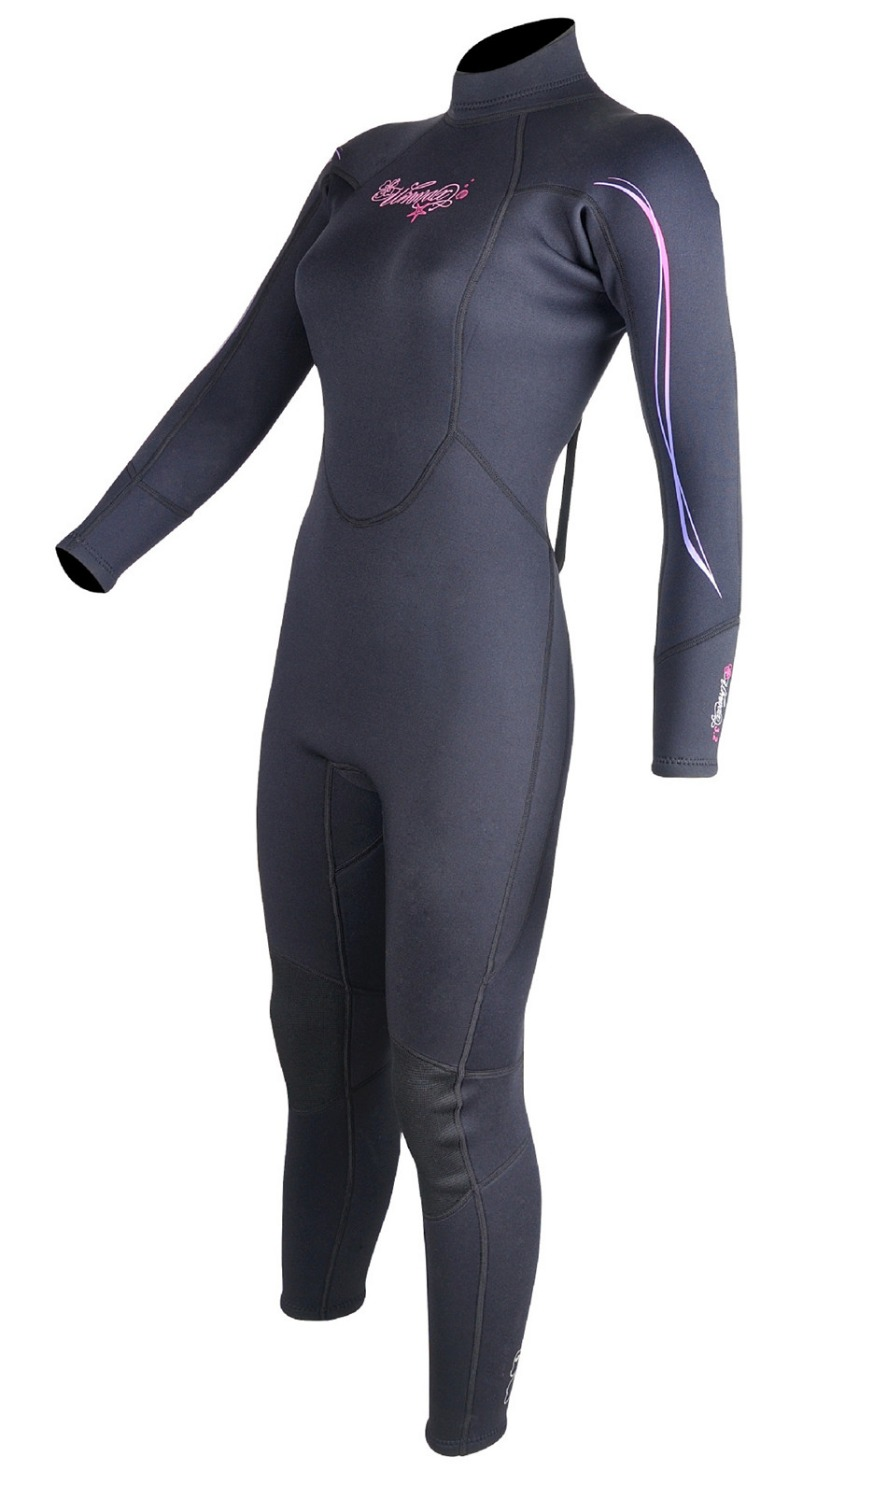 3mm Neoprene women diving surfing suit windsurfing rubber coat wetsuit swimsuit jumpsuit long sleeve surf lycra rash guard цена